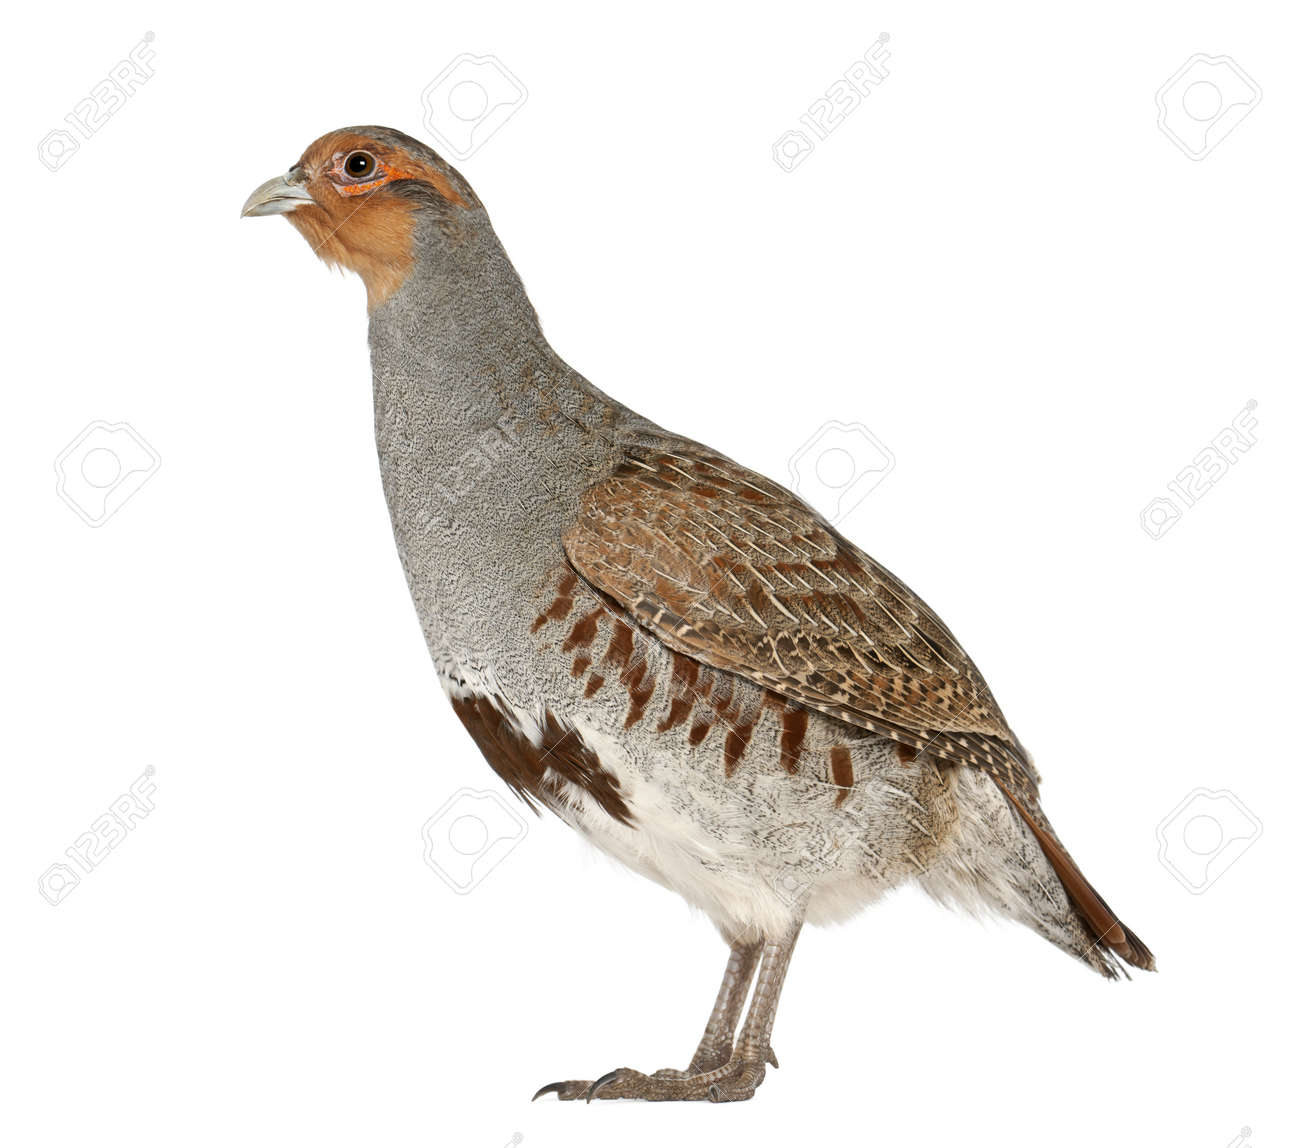 Grey Partridge, Perdix perdix, also known as the English Partridge, Hungarian Partridge, or Hun, a game bird in the pheasant family, standing in front of white background Stock Photo - 13583948